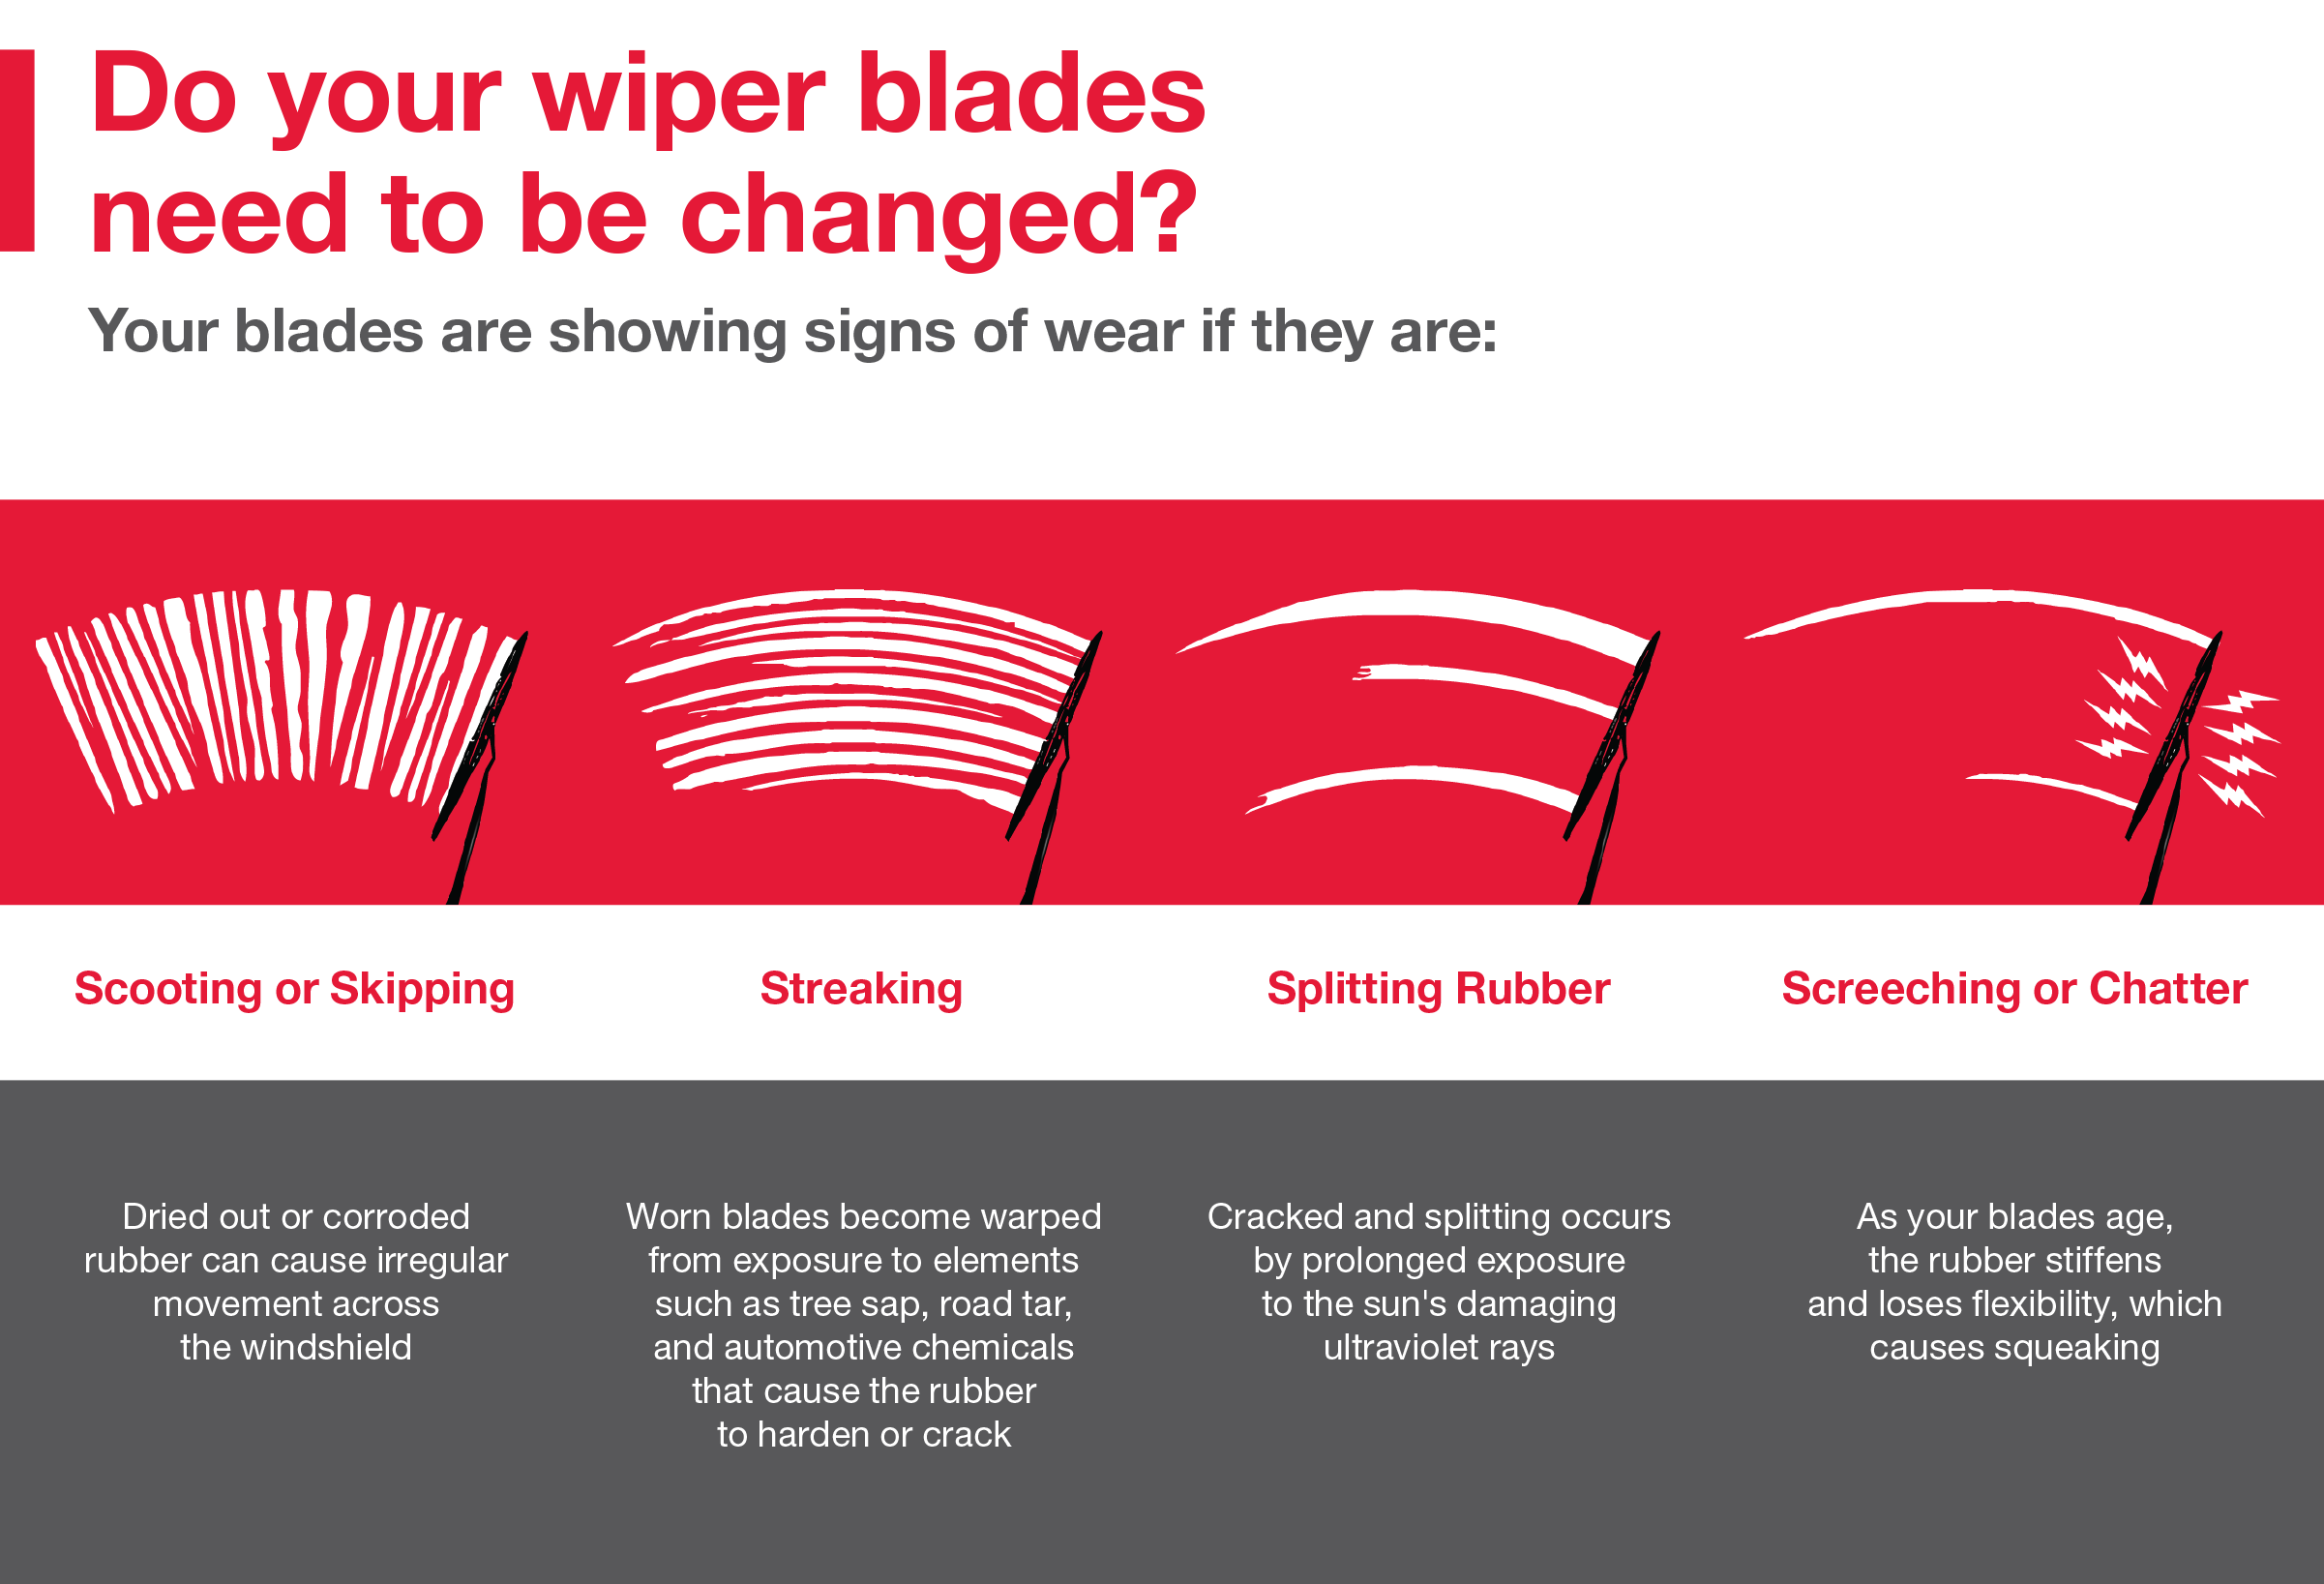 Do your wiper blades need to be changed? Call your local dealer for more info: (661) 218-1679